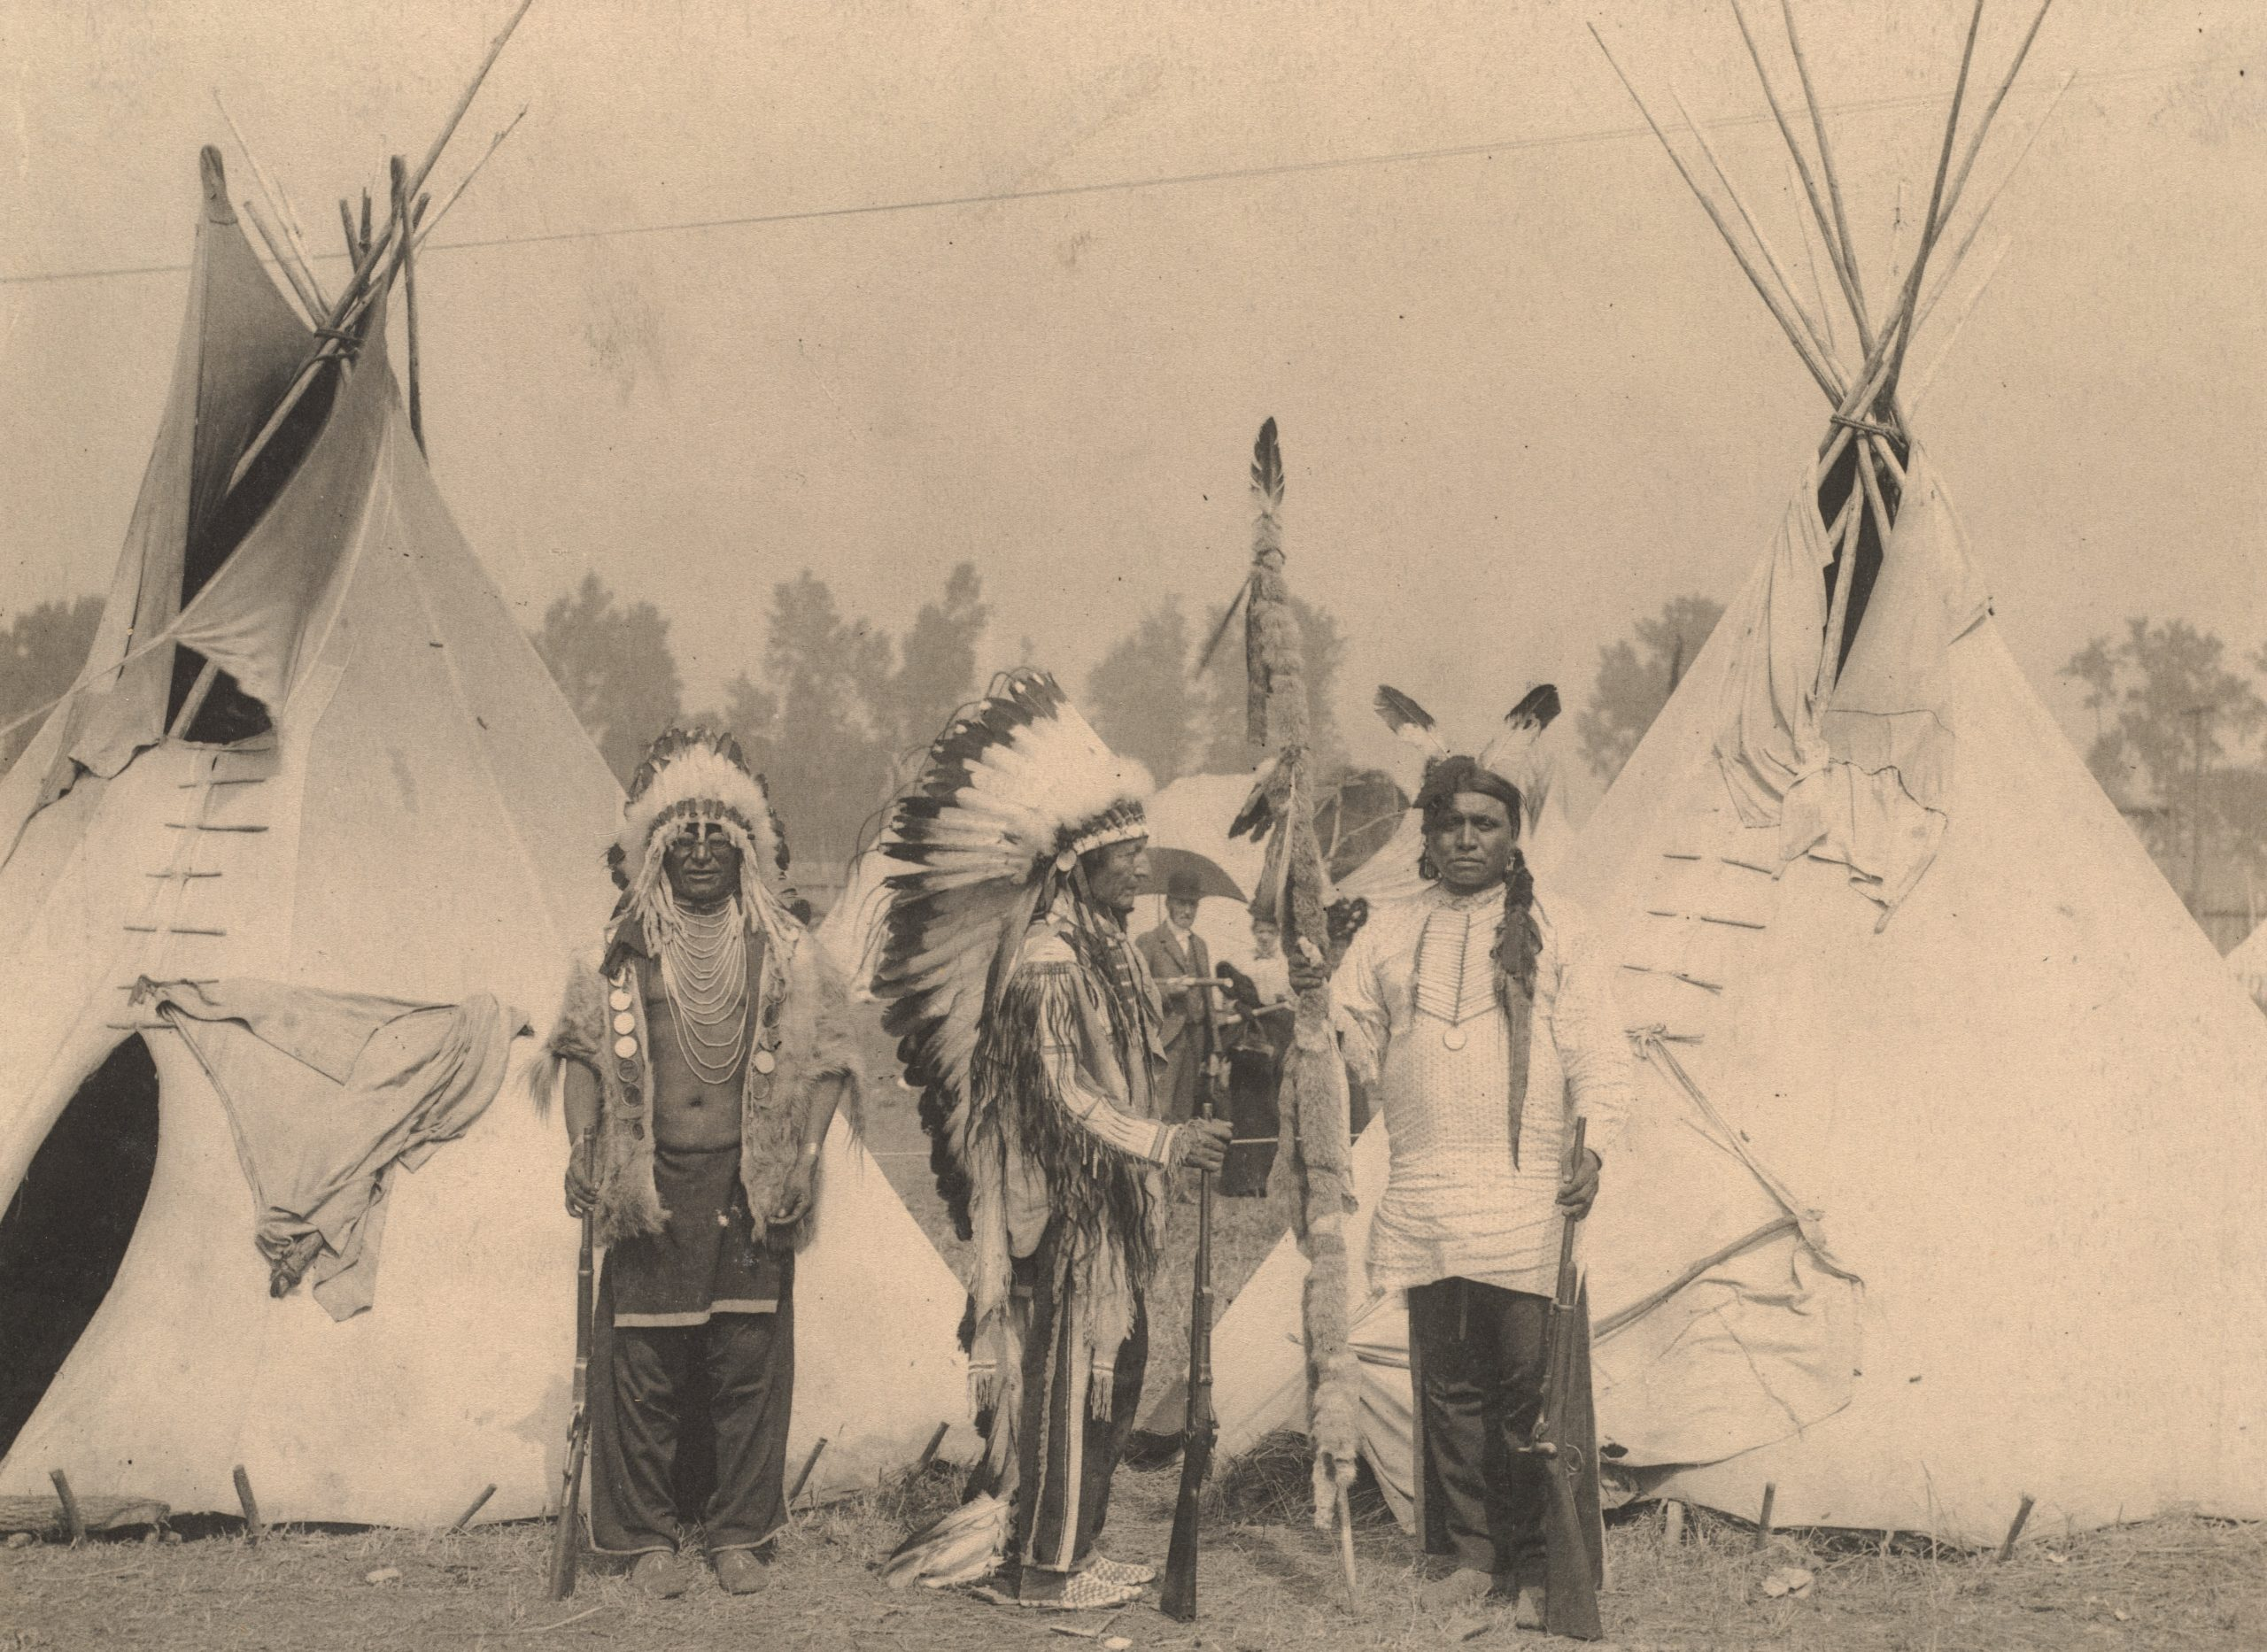 Black Foot, Standing Bear, Big Eagle, Sioux. Three members of the Sioux tribe pose in Indian Village, 1898